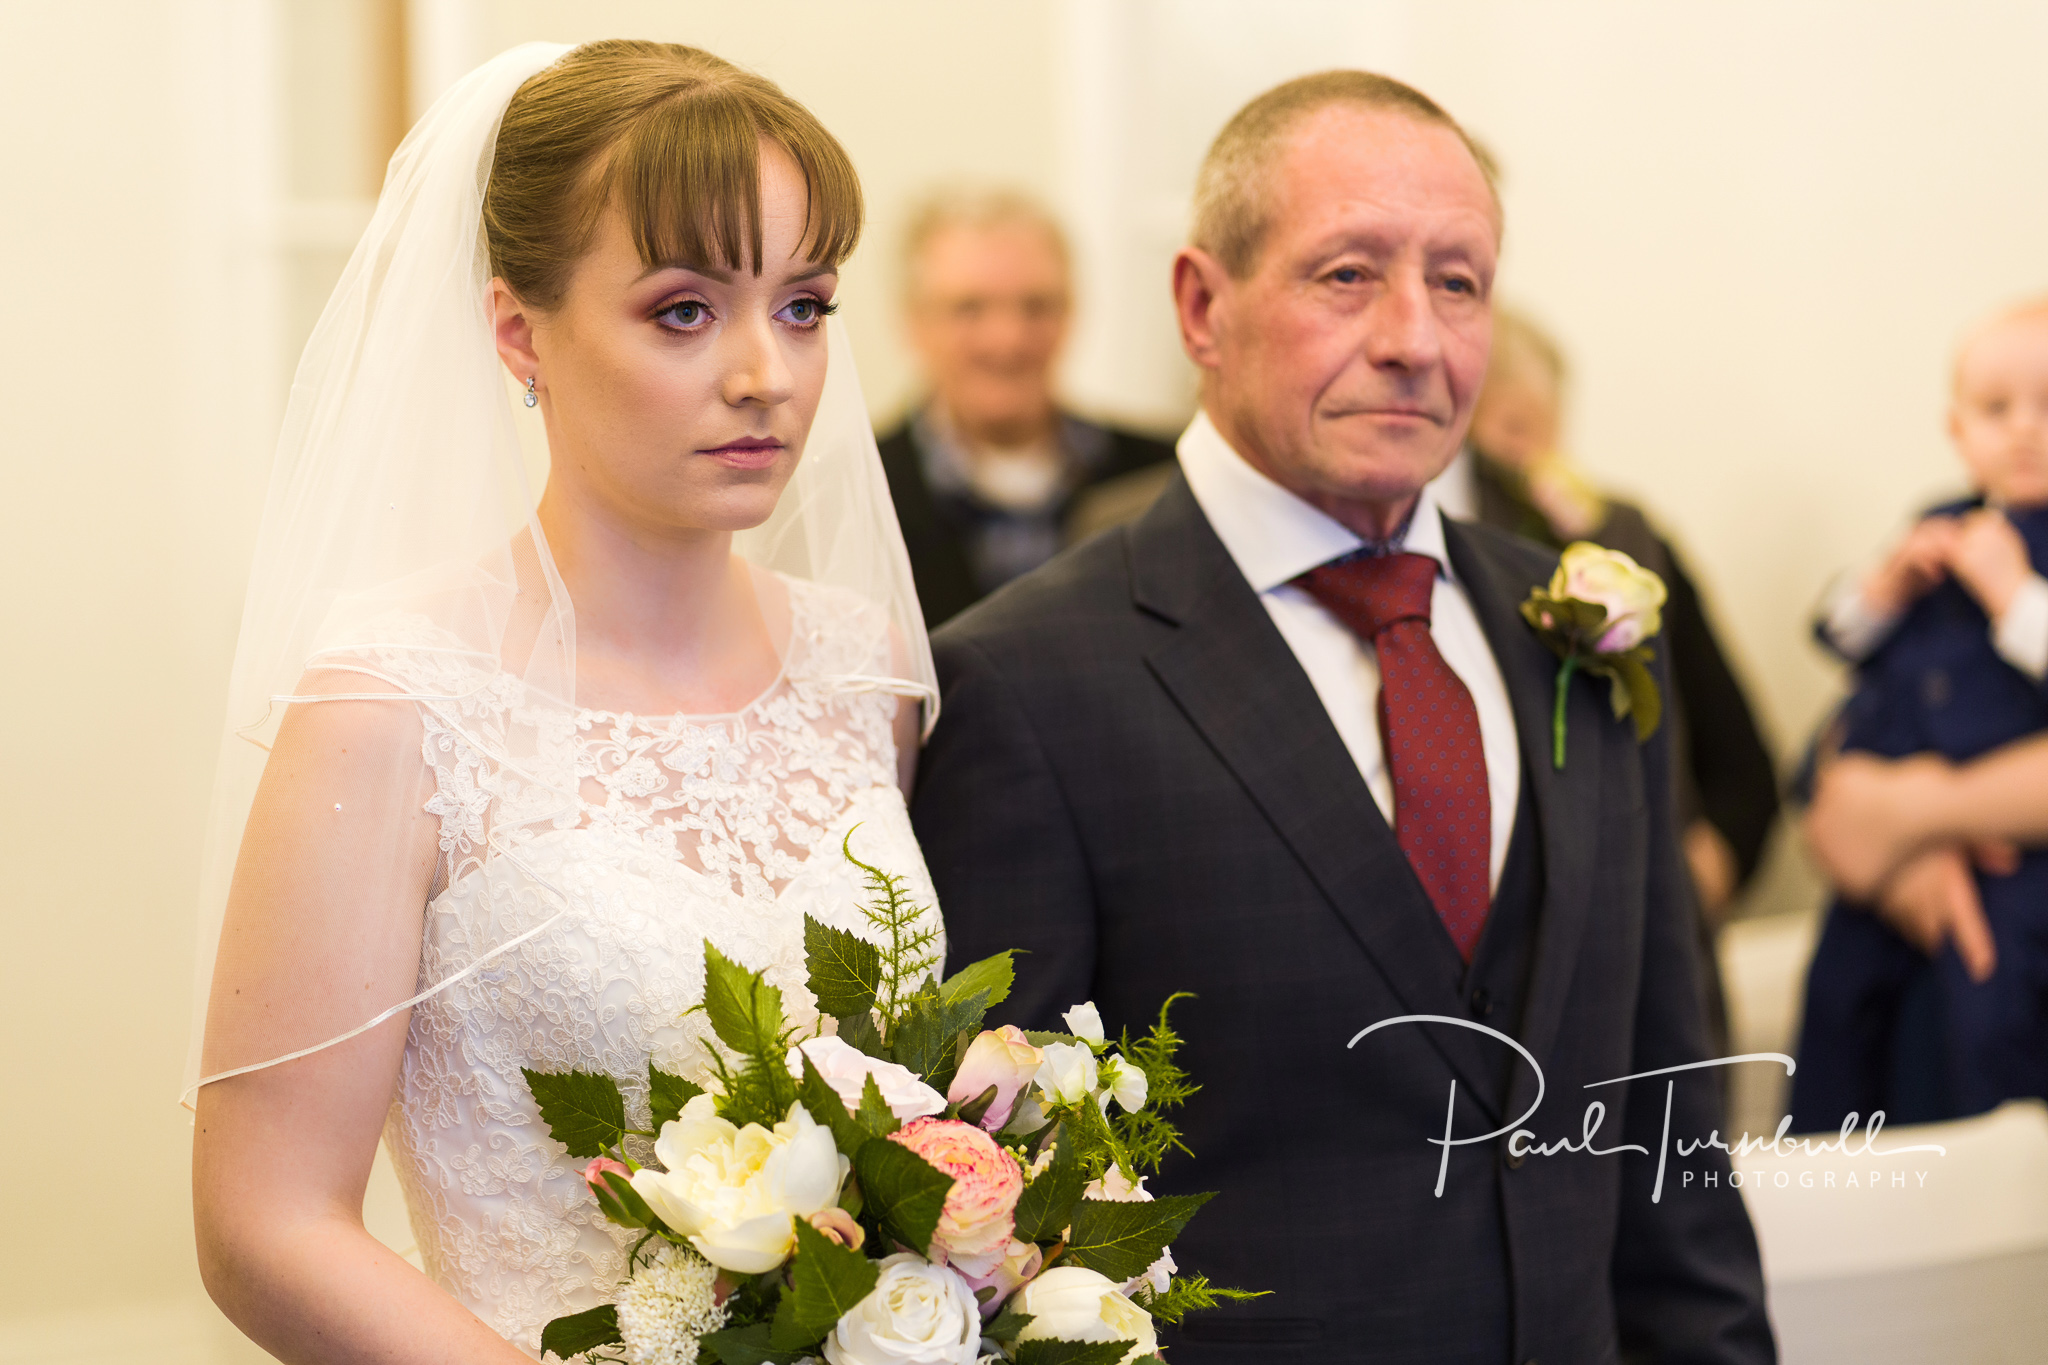 wedding-photographer-pontefract-yorkshire-laura-keanu-028.jpg